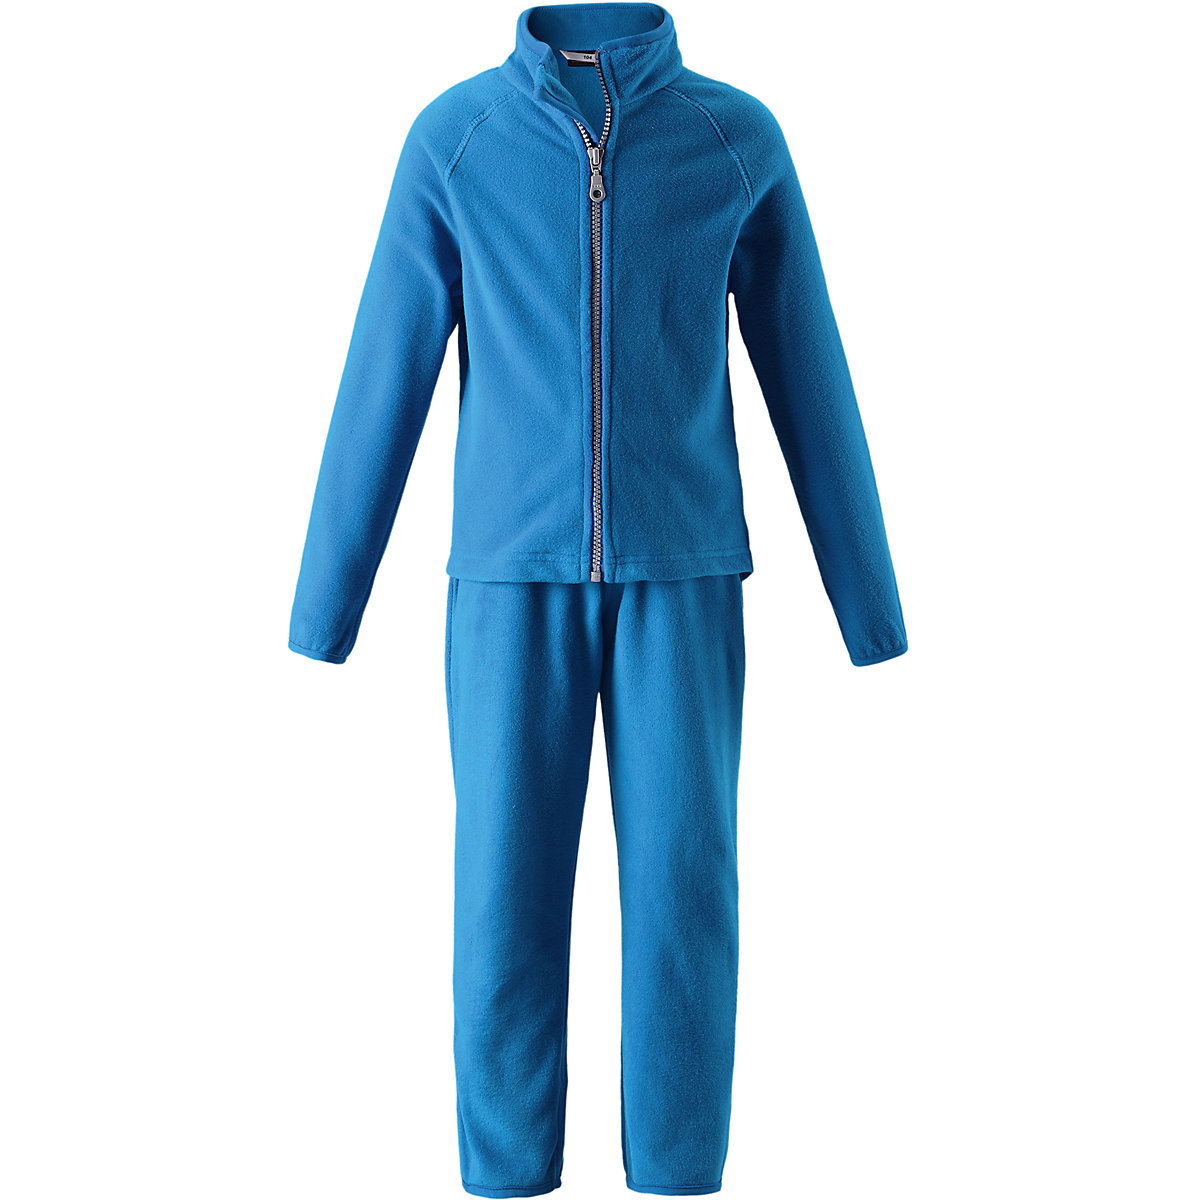 Children's Sets LASSIE for boys and girls 9560246 Winter Track Suit Kids Children clothes Warm retail children s sports suit boys and girls 3 12 years old children big virgin suit uniforms spring clothes jacket trousers 1